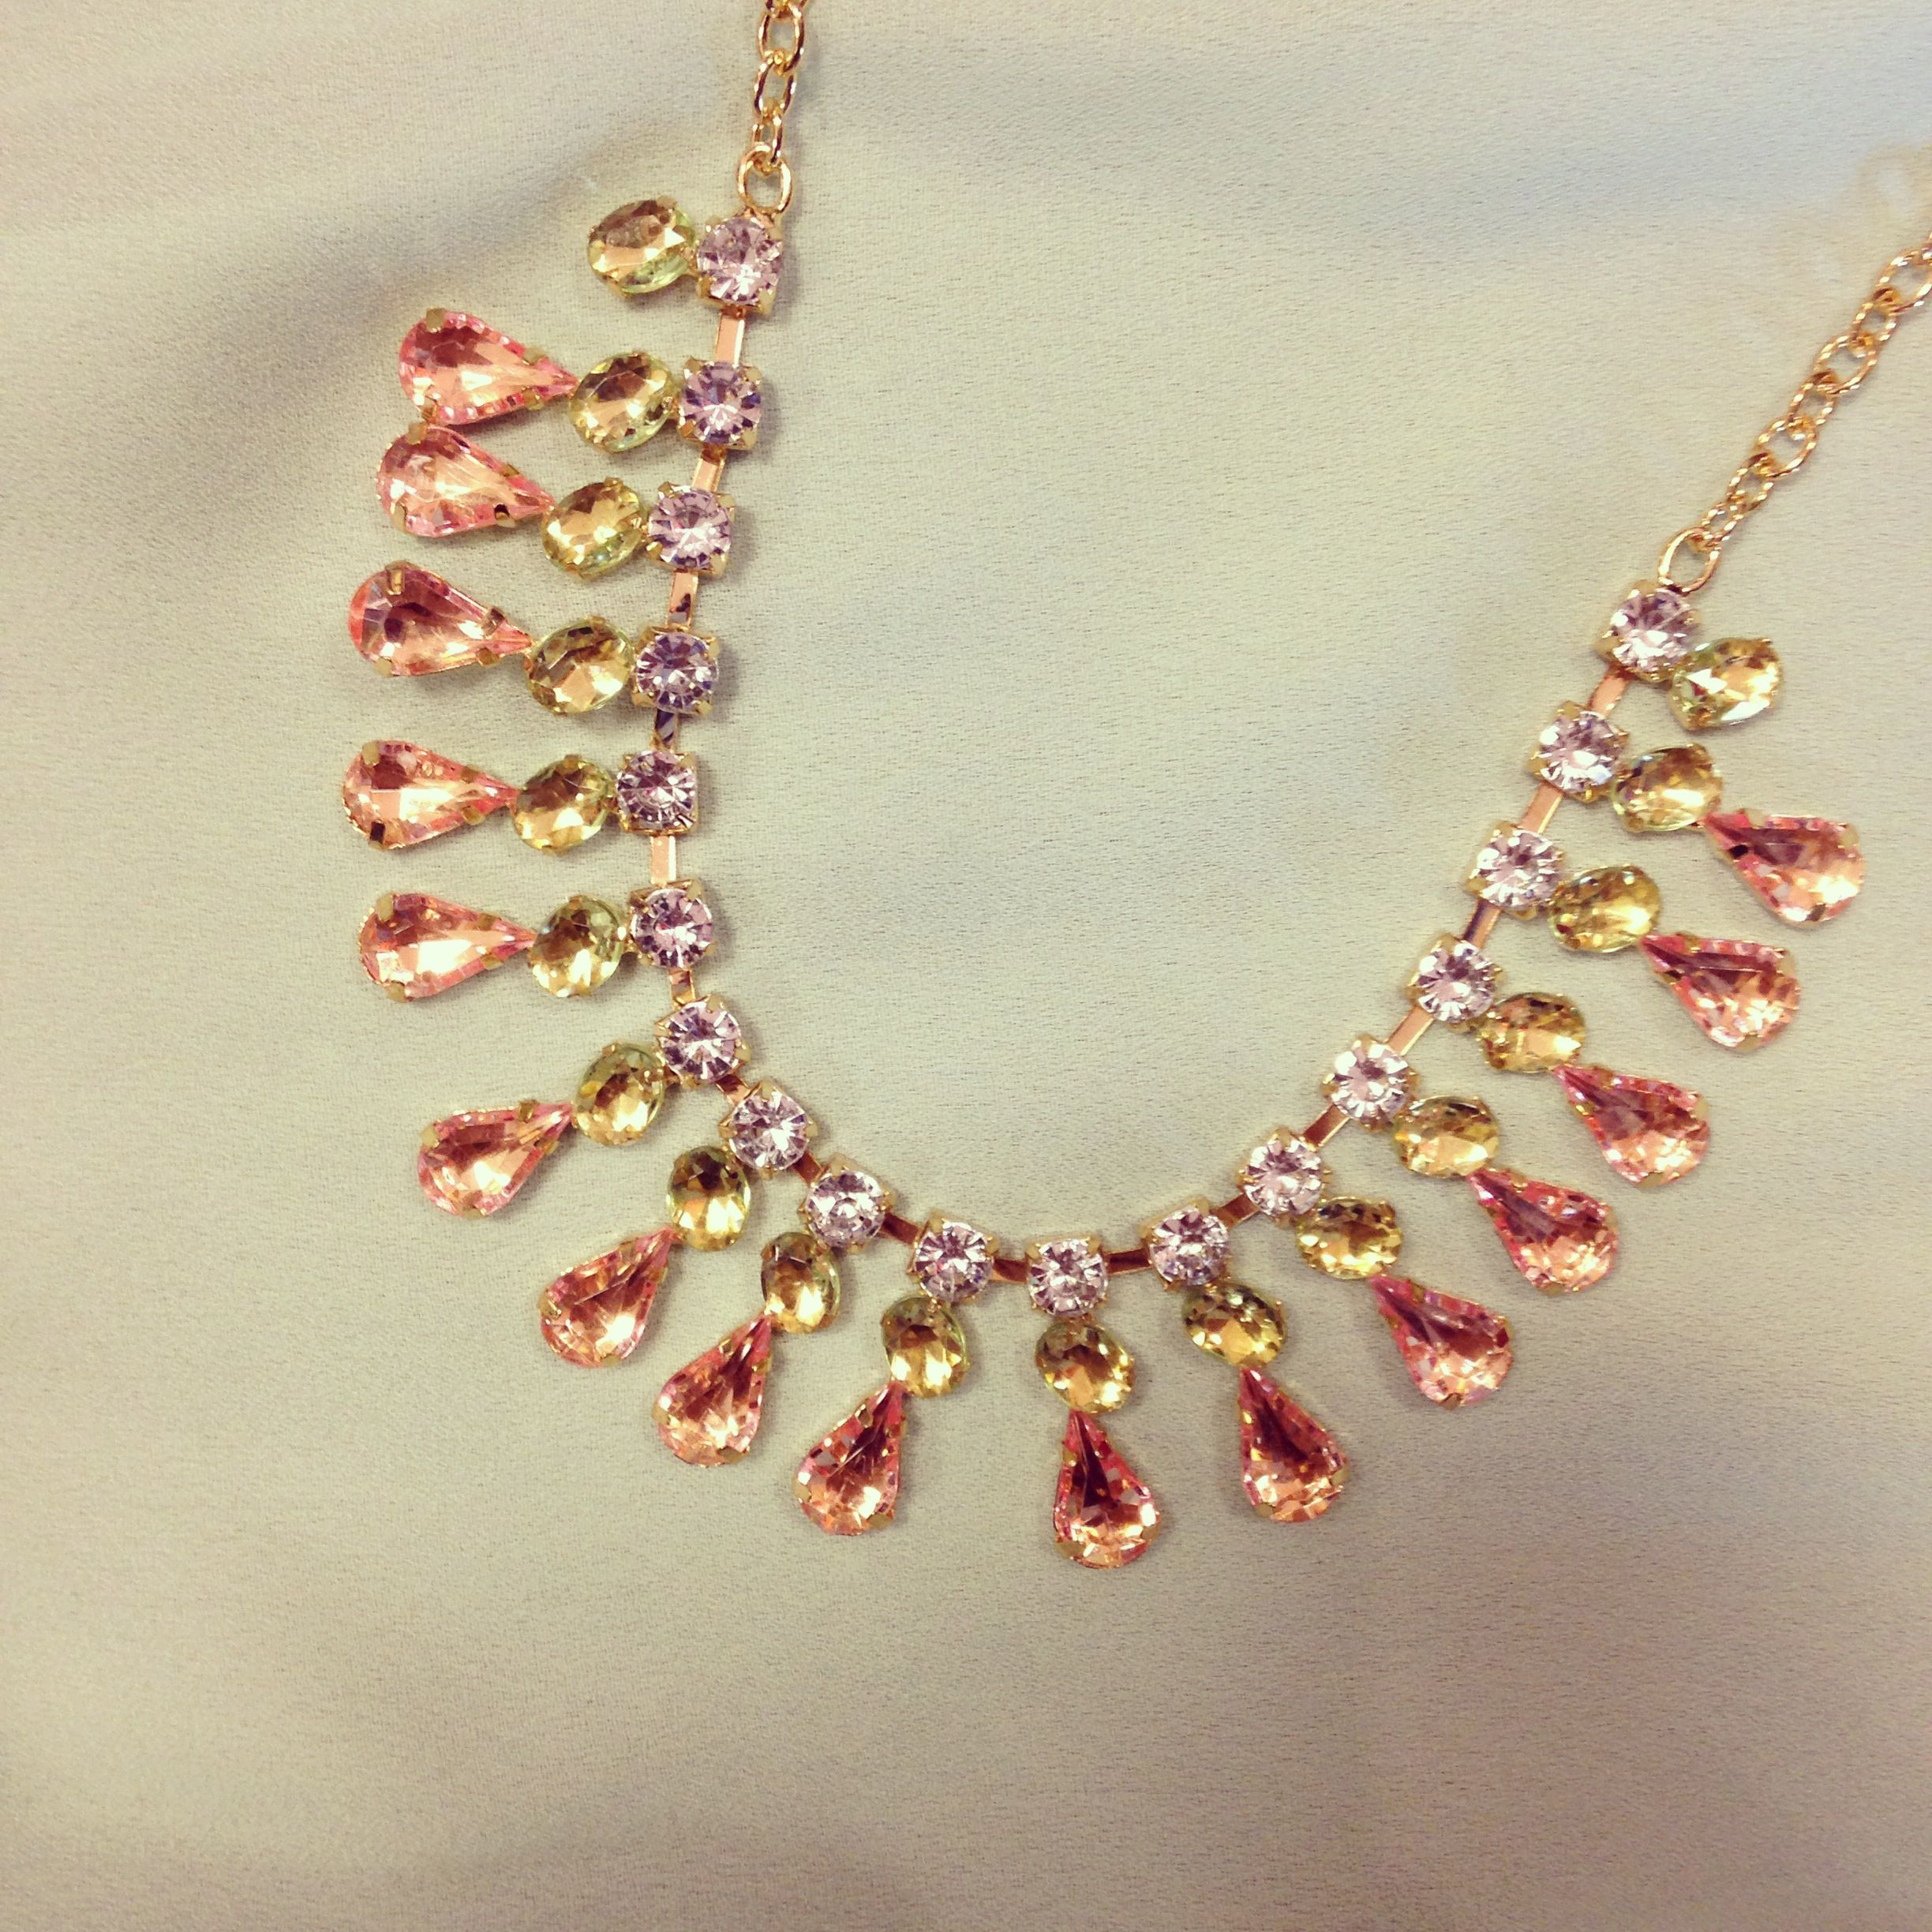 Kohls Jewelry Box Fascinating Lighten Up Your Look With This Candie's Necklace #shine #sparkle